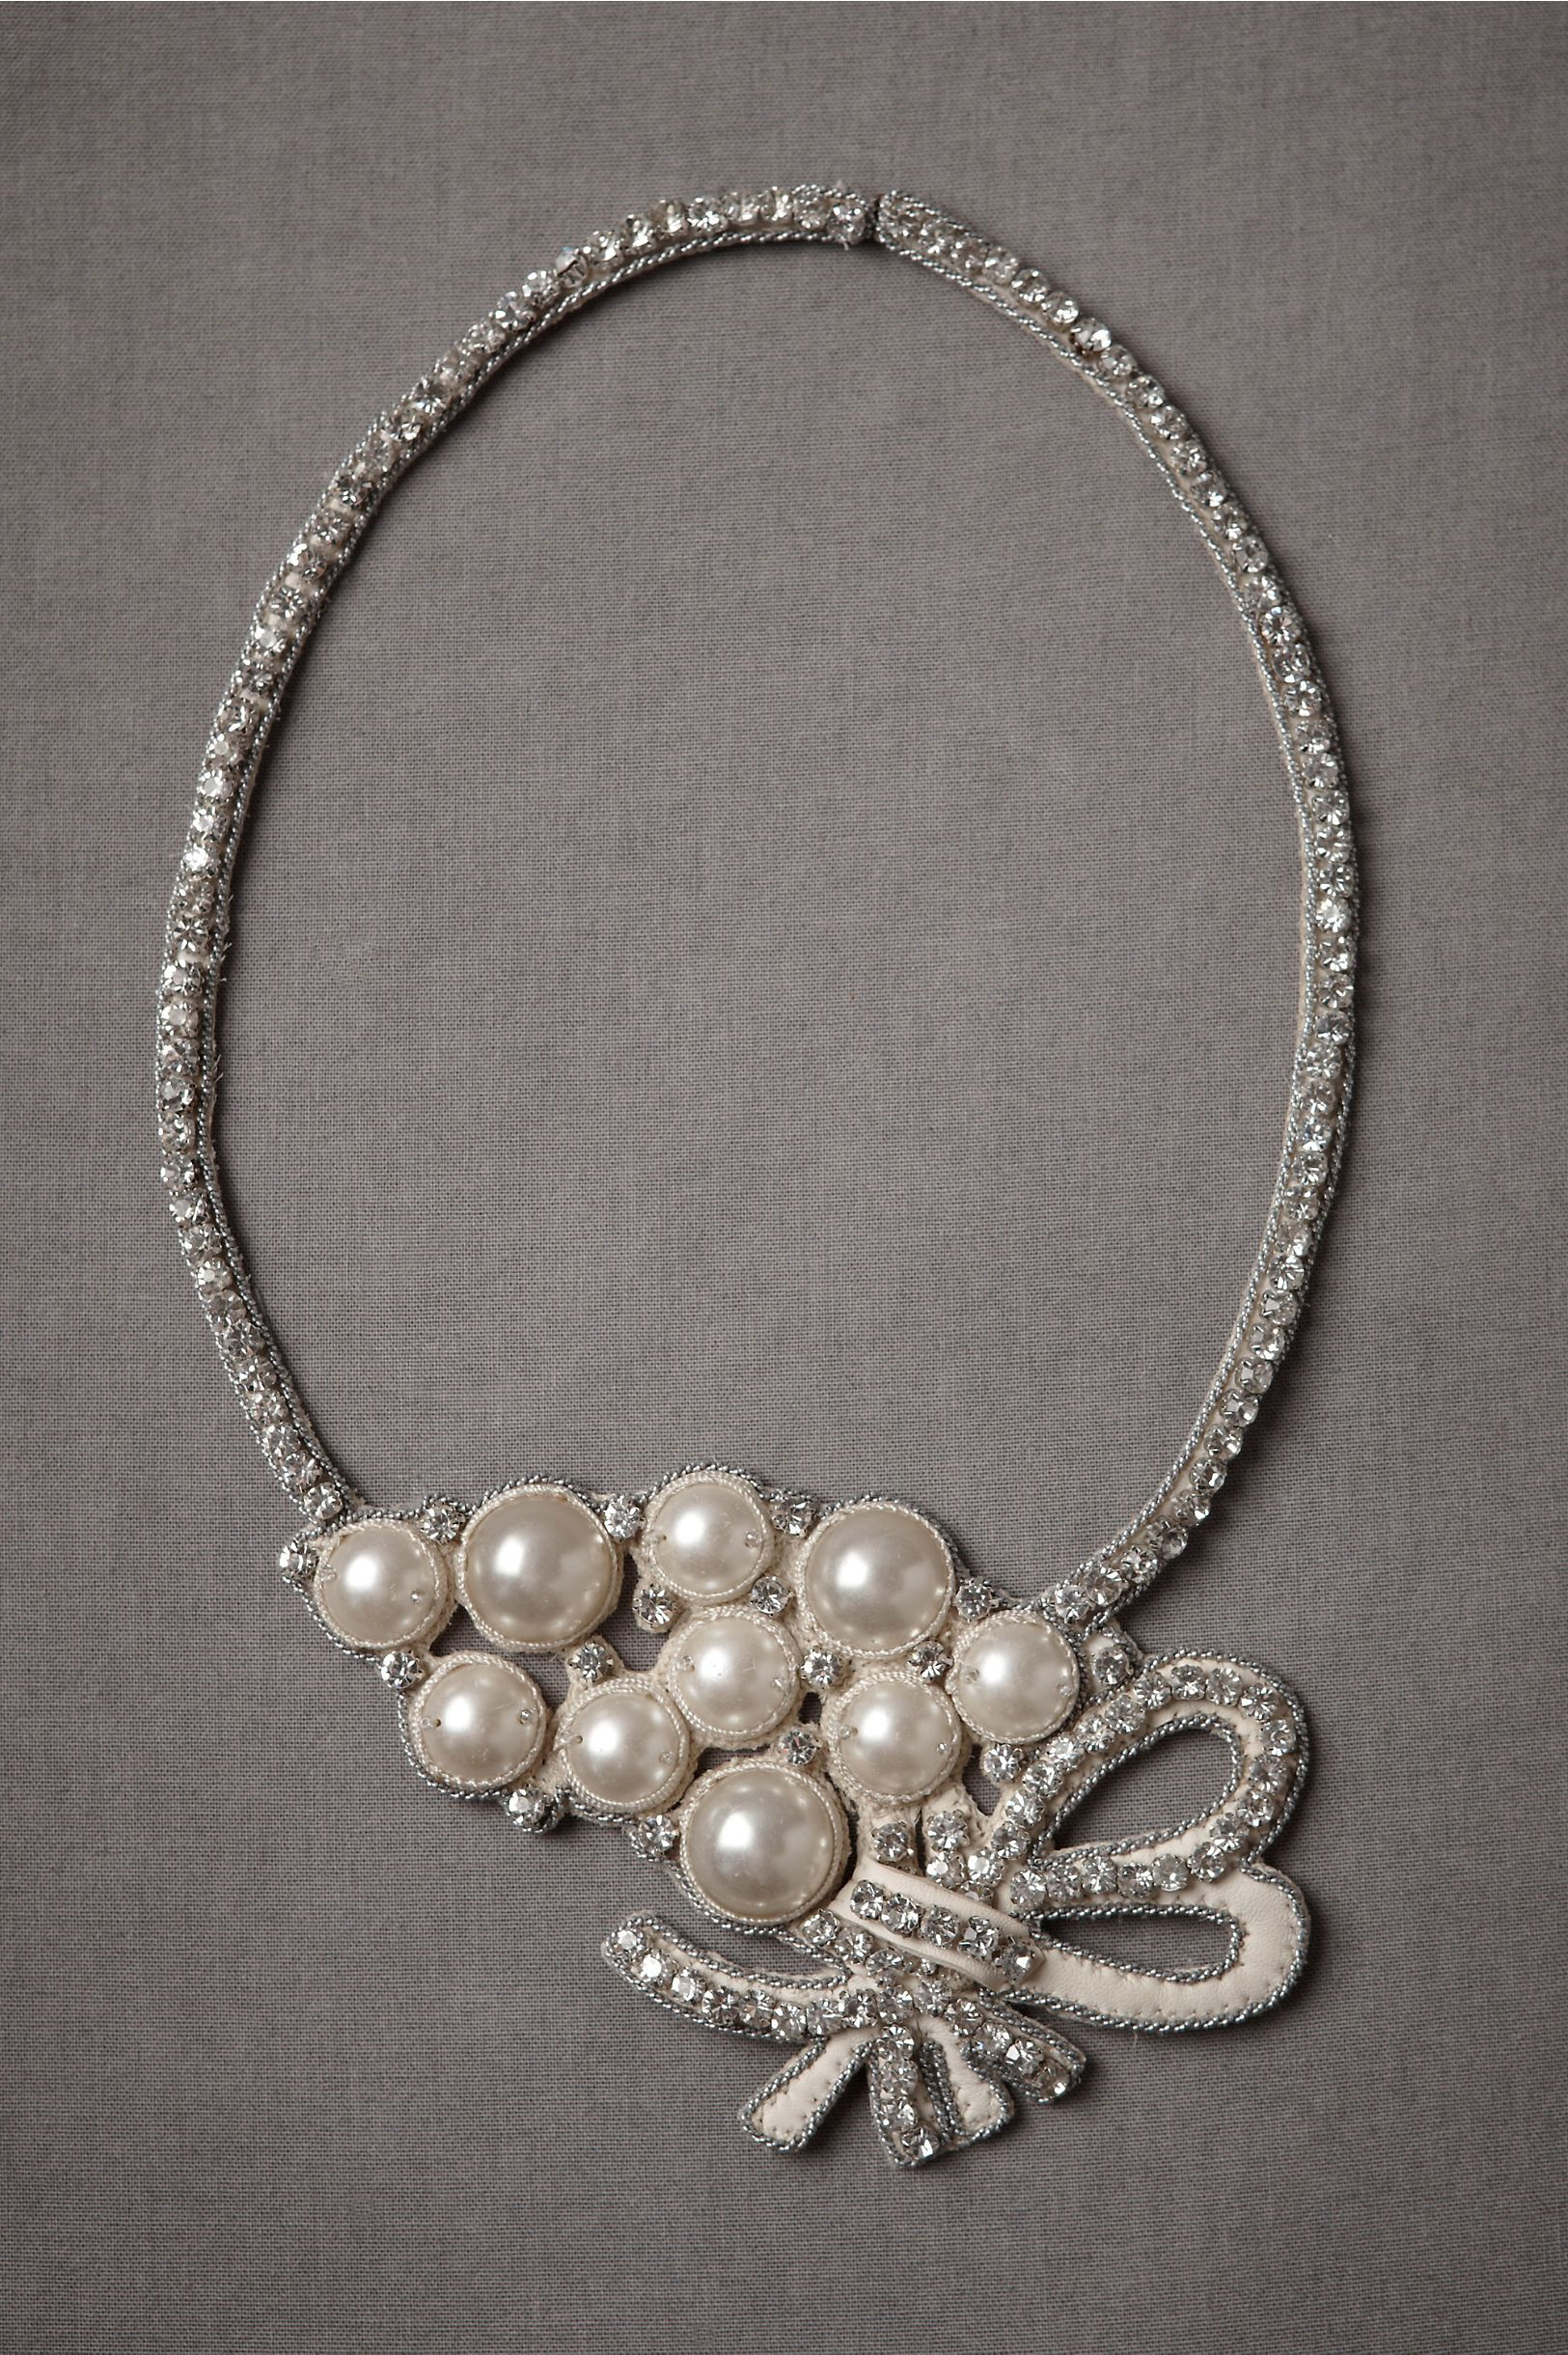 BHLDN pearl necklace